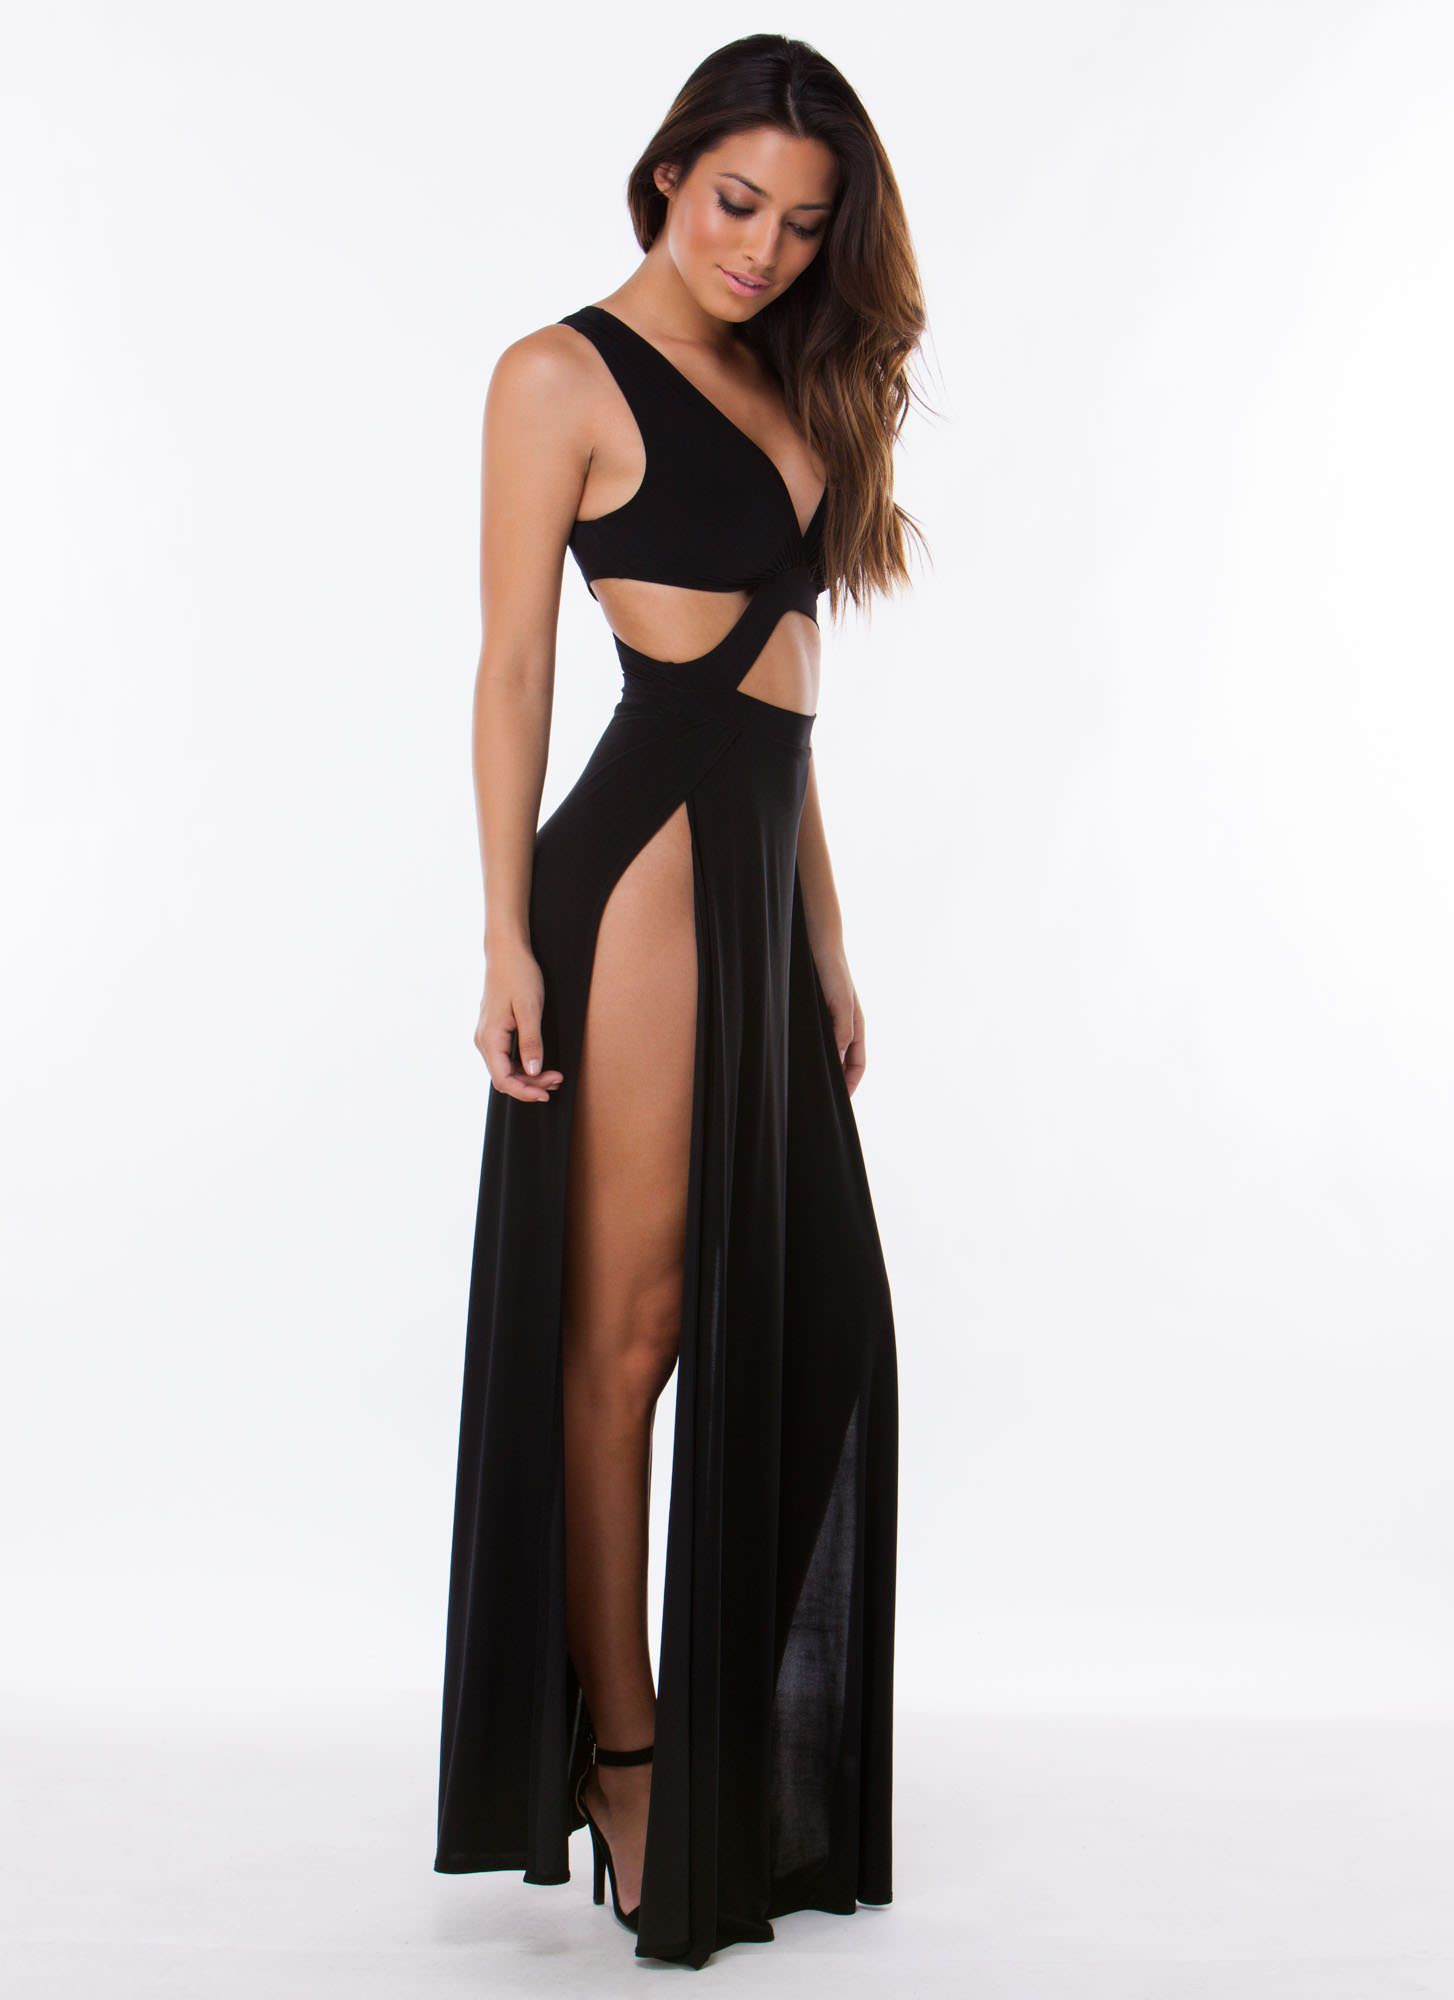 The dress goddess - Look Like A Goddess With This Cut Out Maxi Dress The Double Slits Will